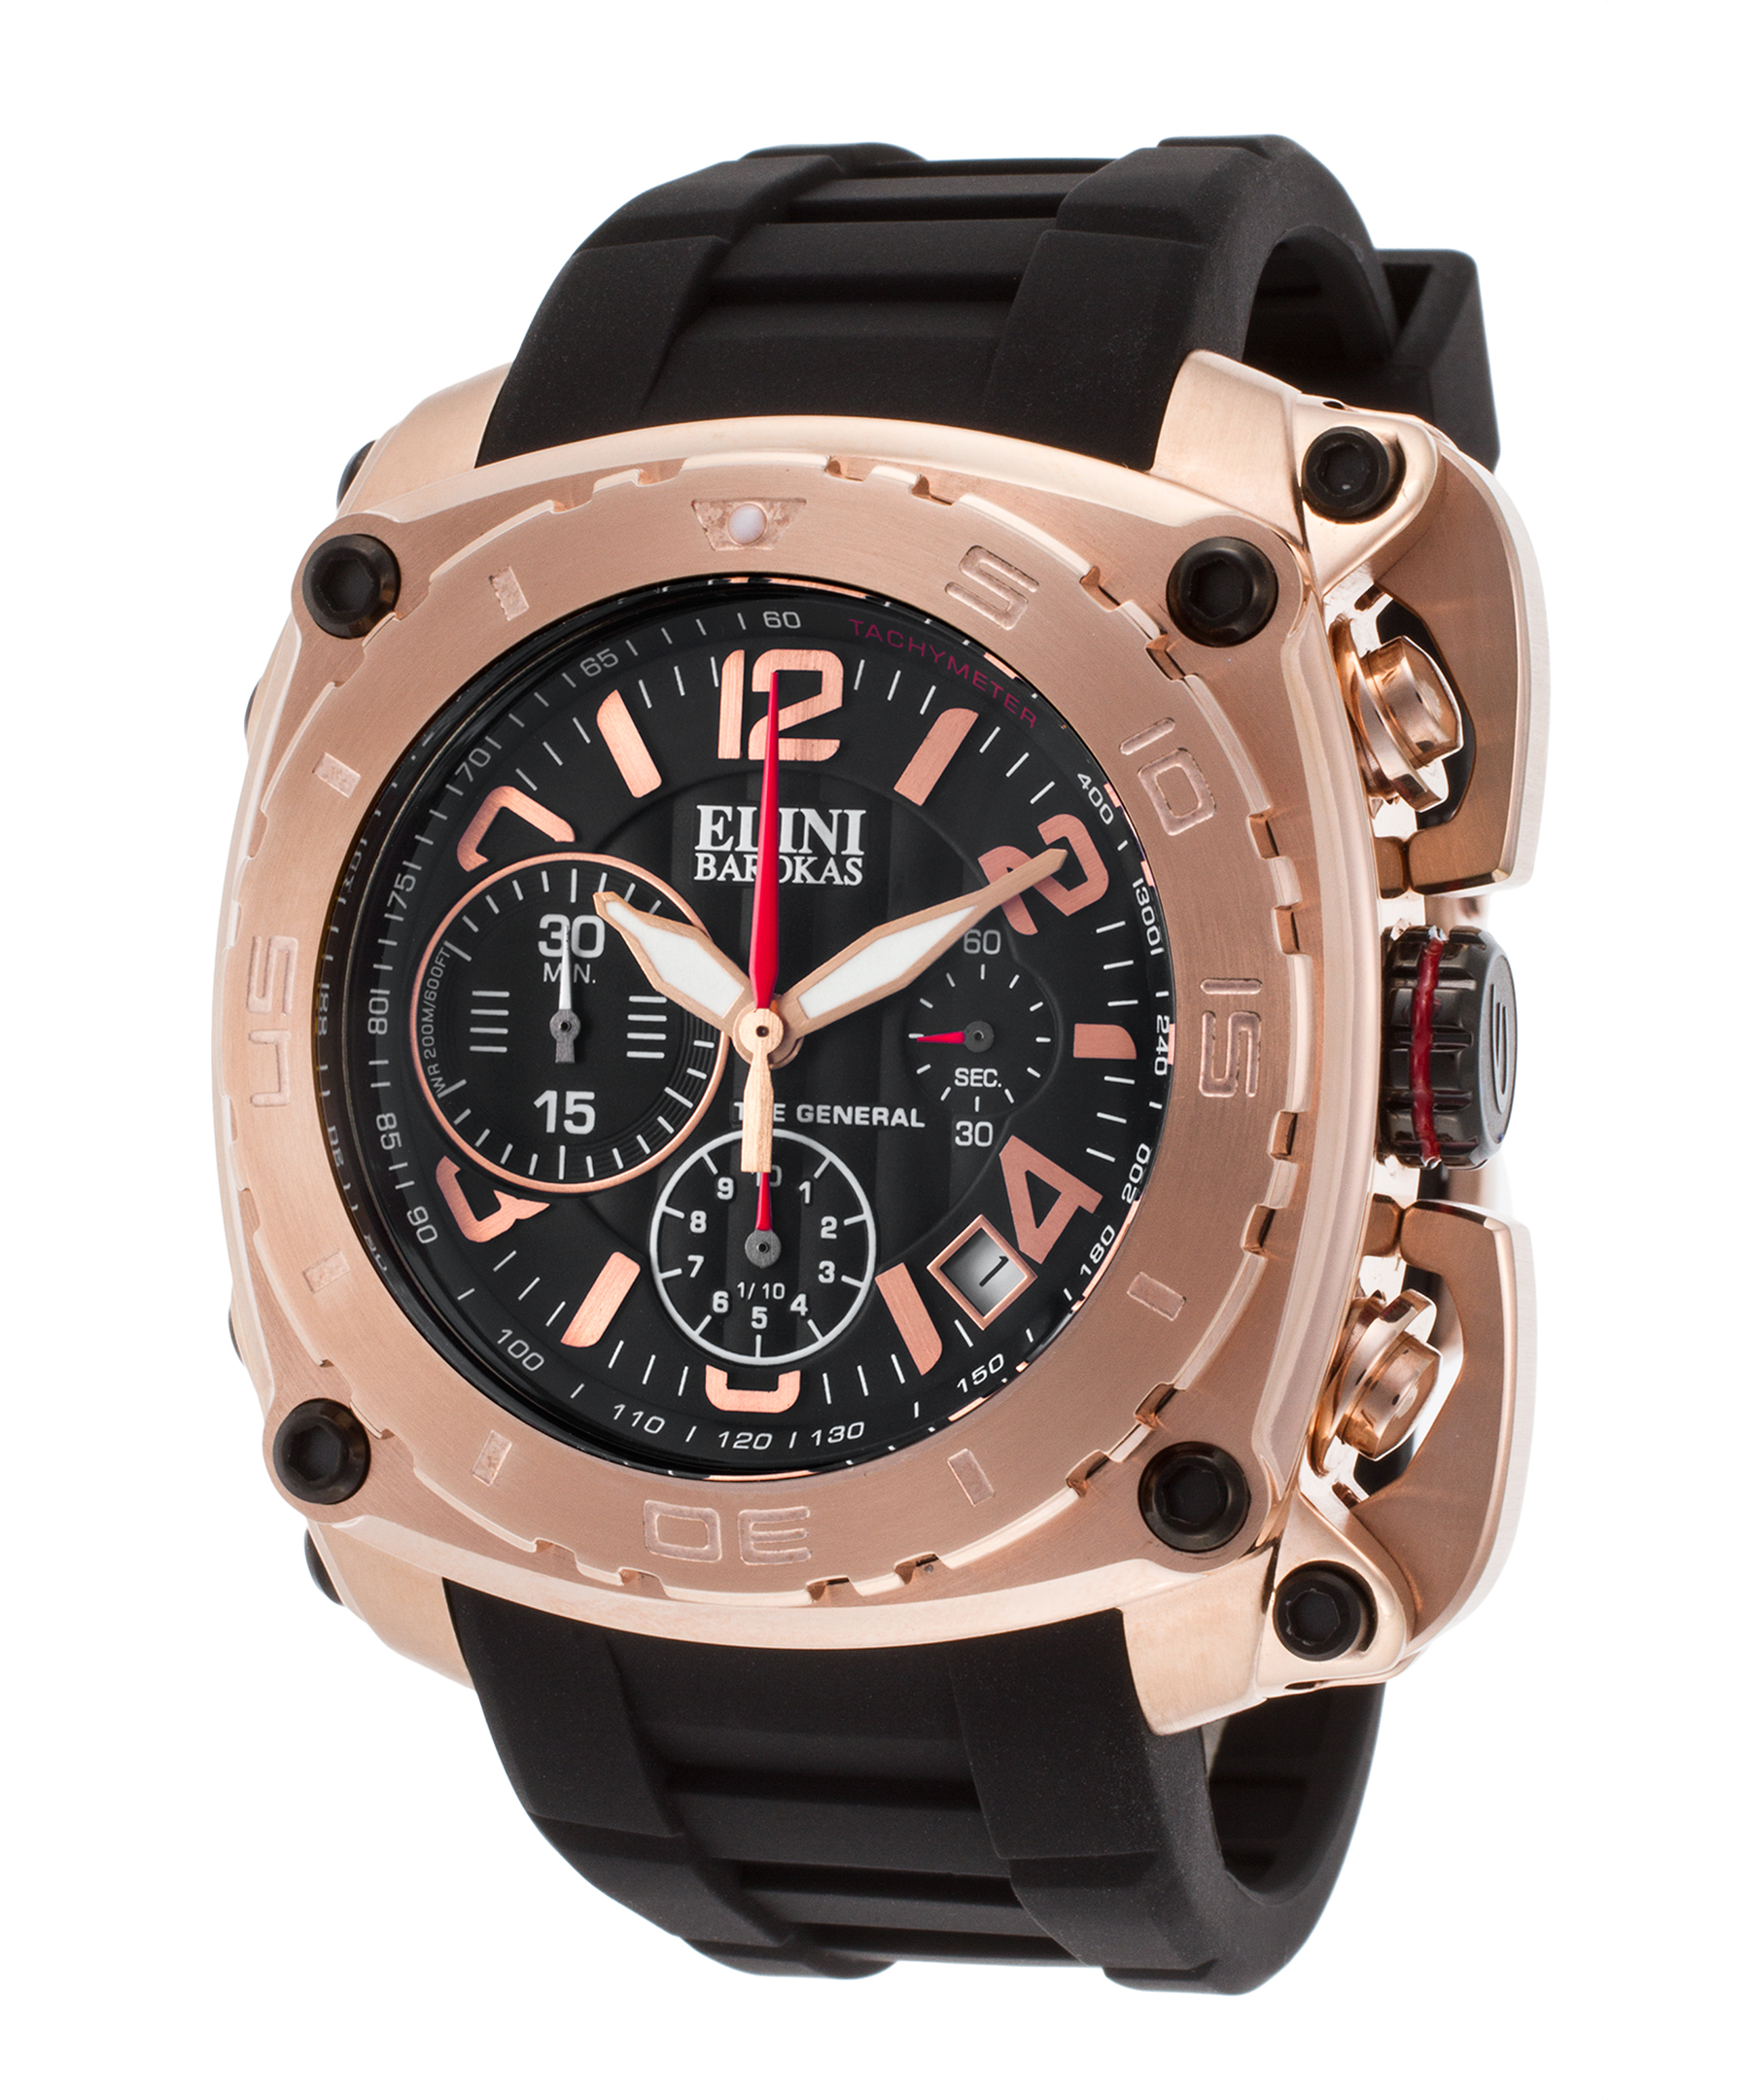 Elini Barokas 20010-Rg-01 The General Chronograph Black Silicone And Dial Rose-Tone Ss Watch